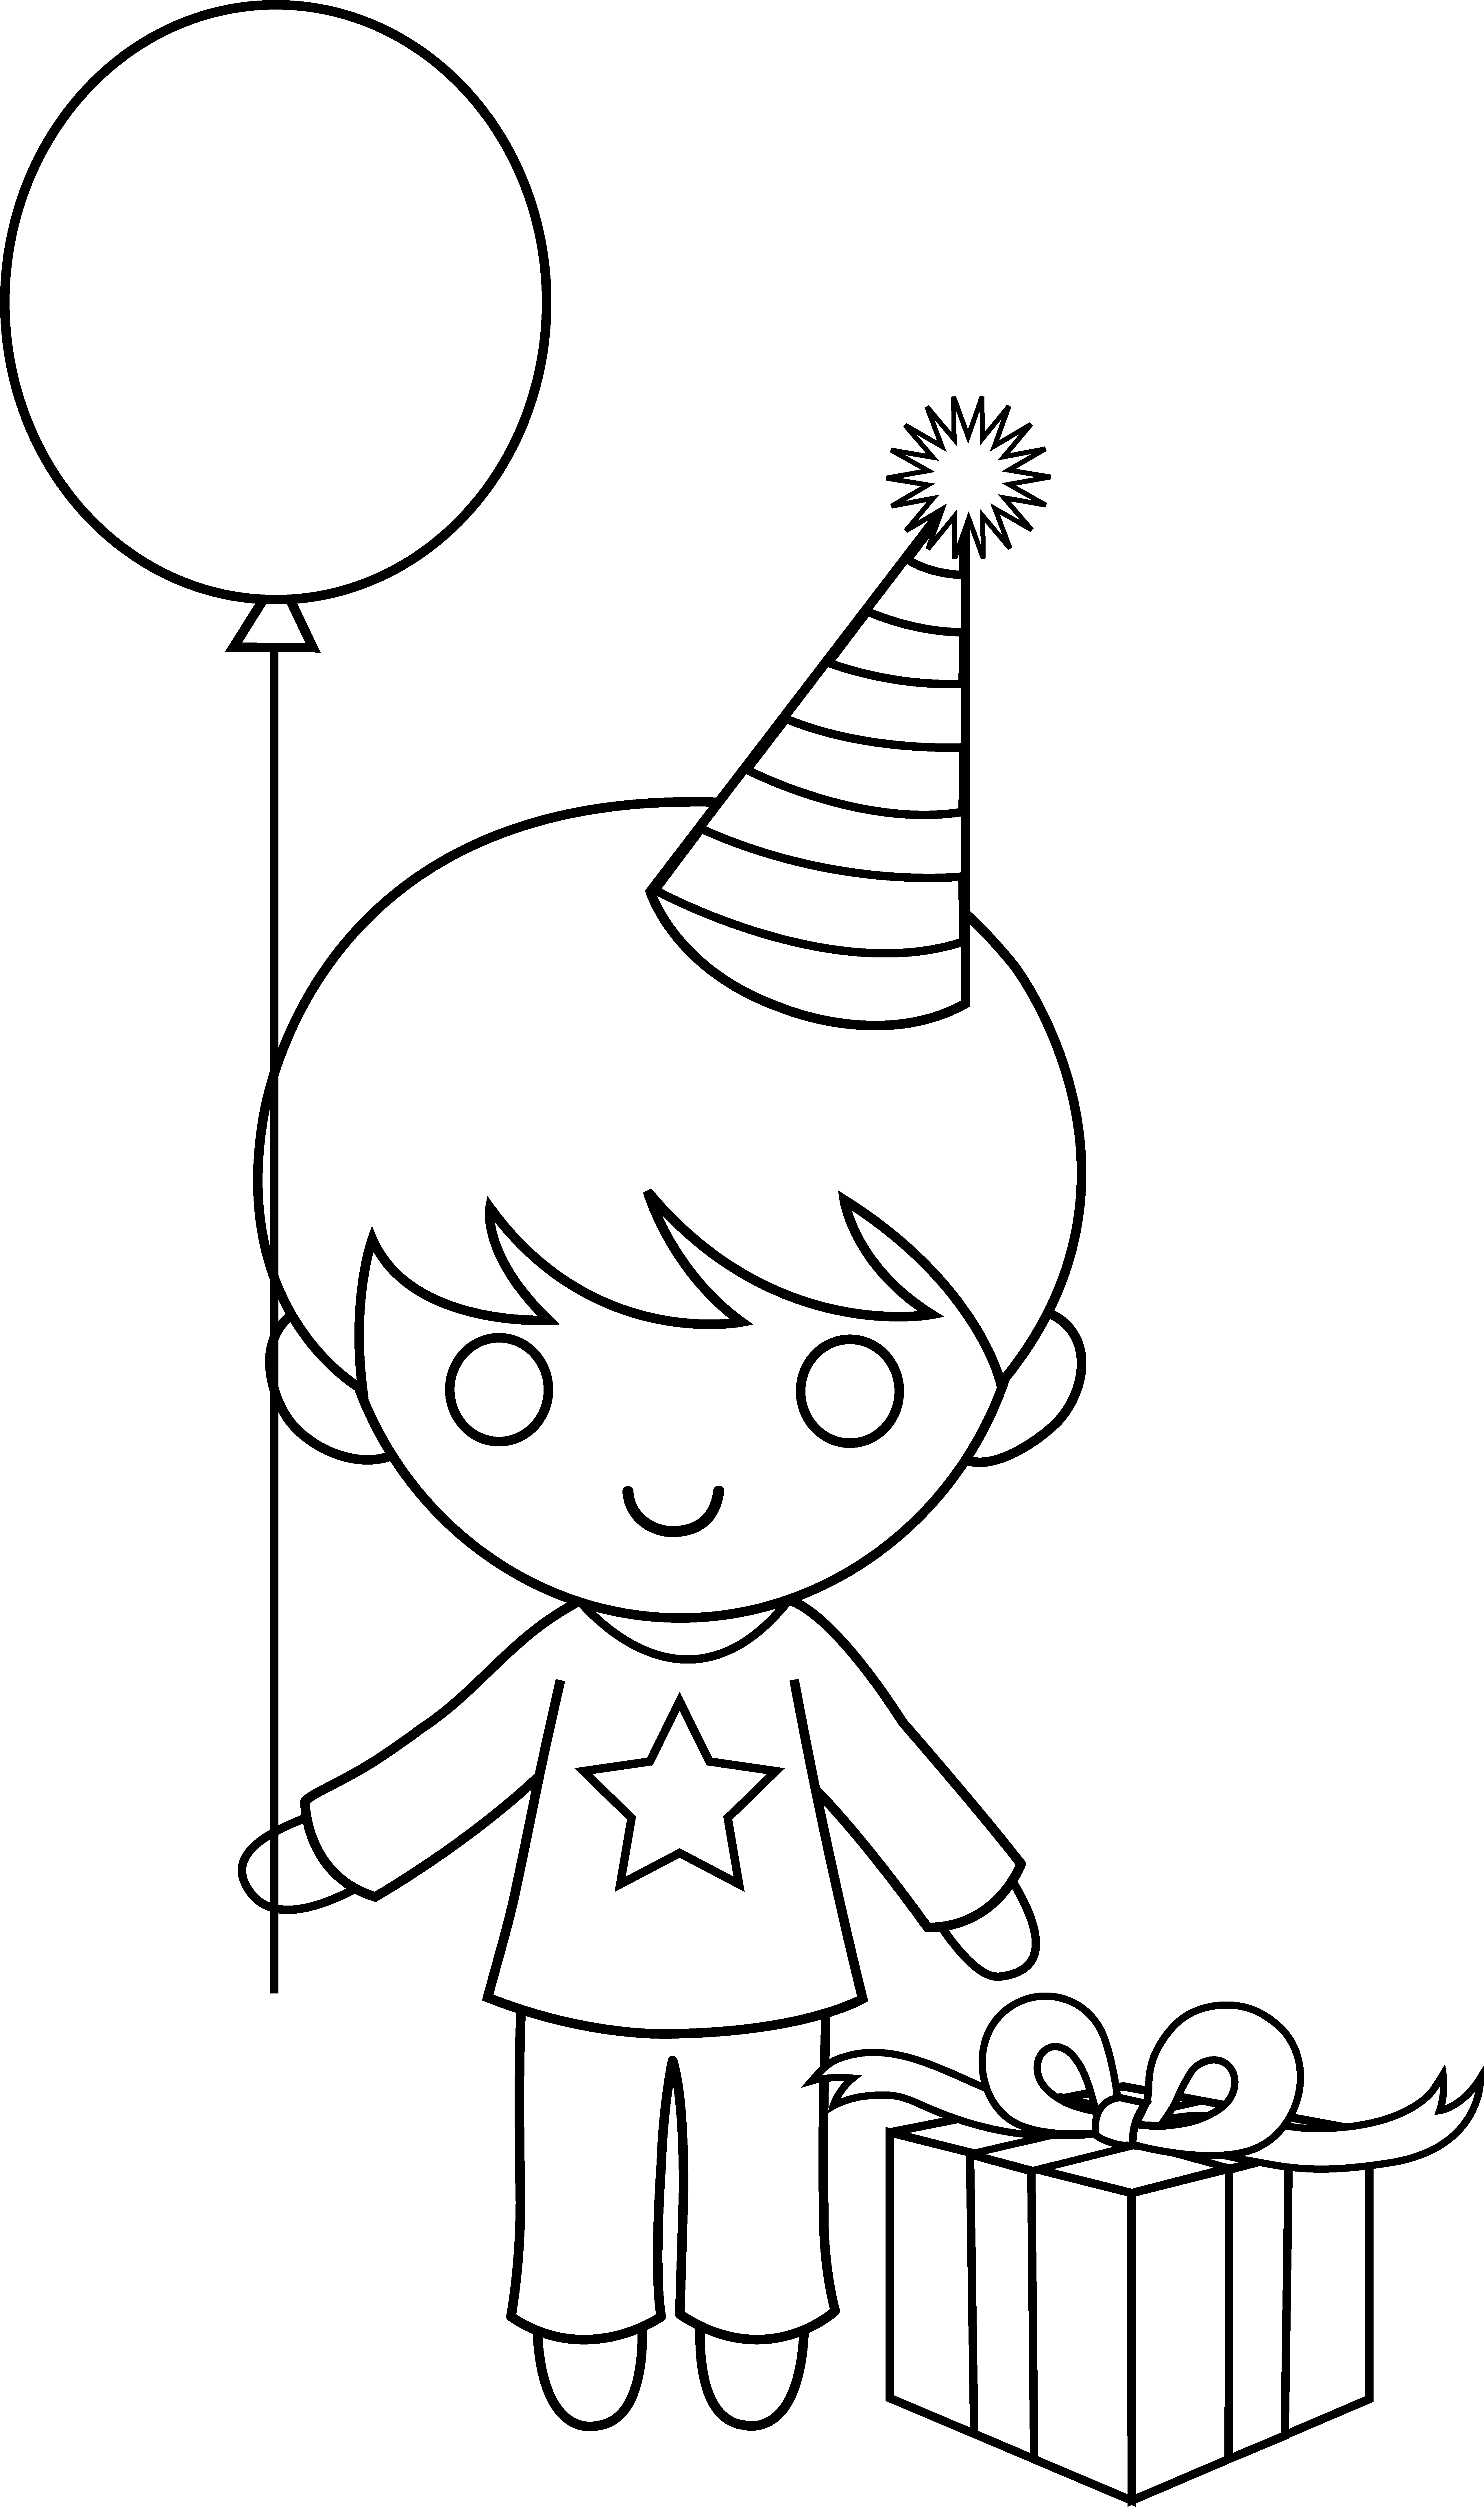 Birthday coloring page free. Color clipart boy